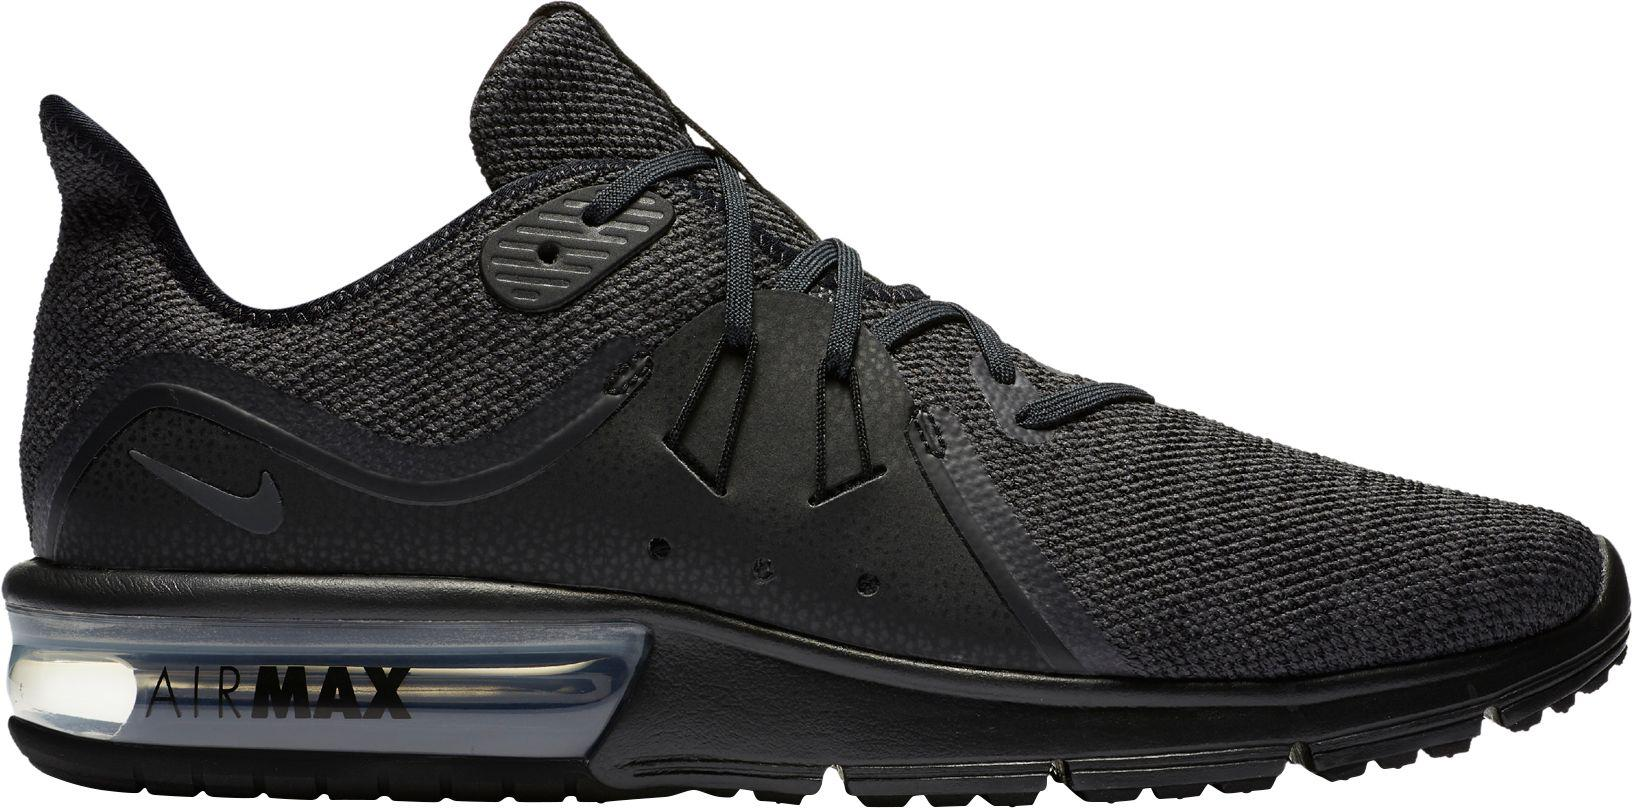 518fe245282 Lyst - Nike Air Max Sequent 3 Shoe in Black for Men